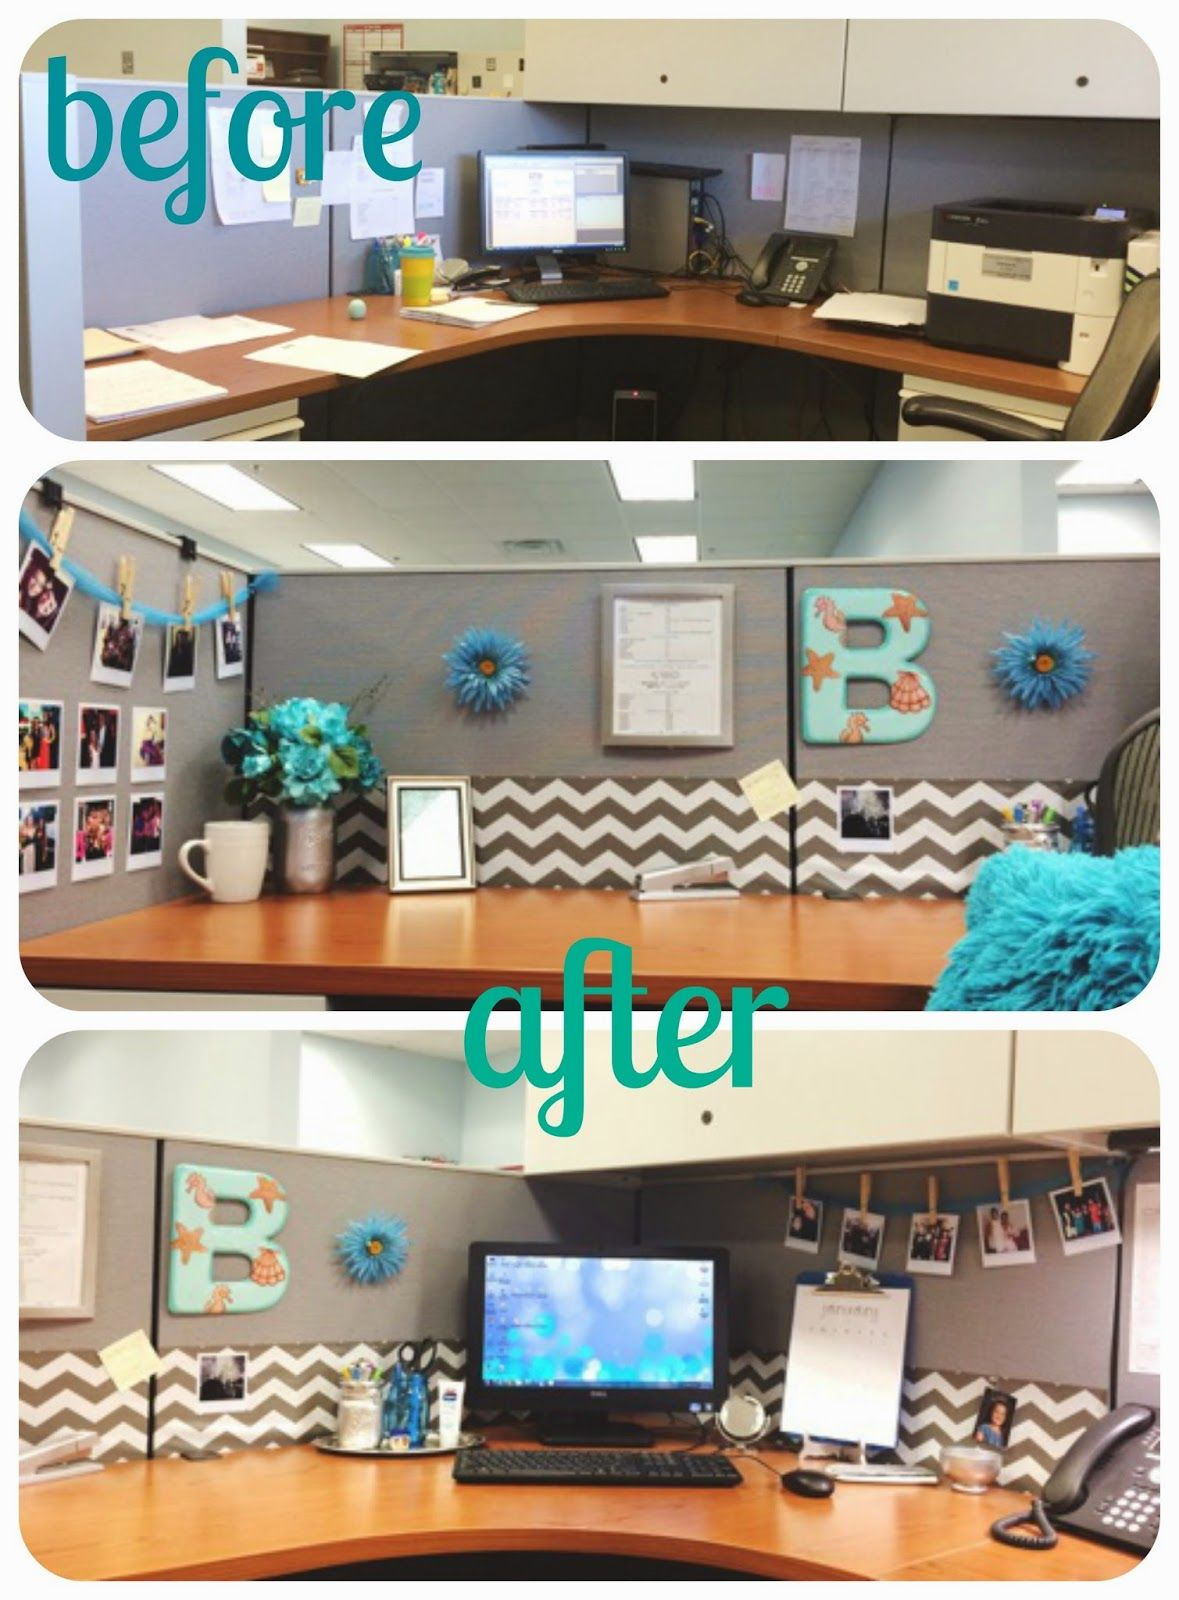 give your cubicle office or work space a makeover for cubical ideasdesk ideasdecorating - Cubicle Design Ideas